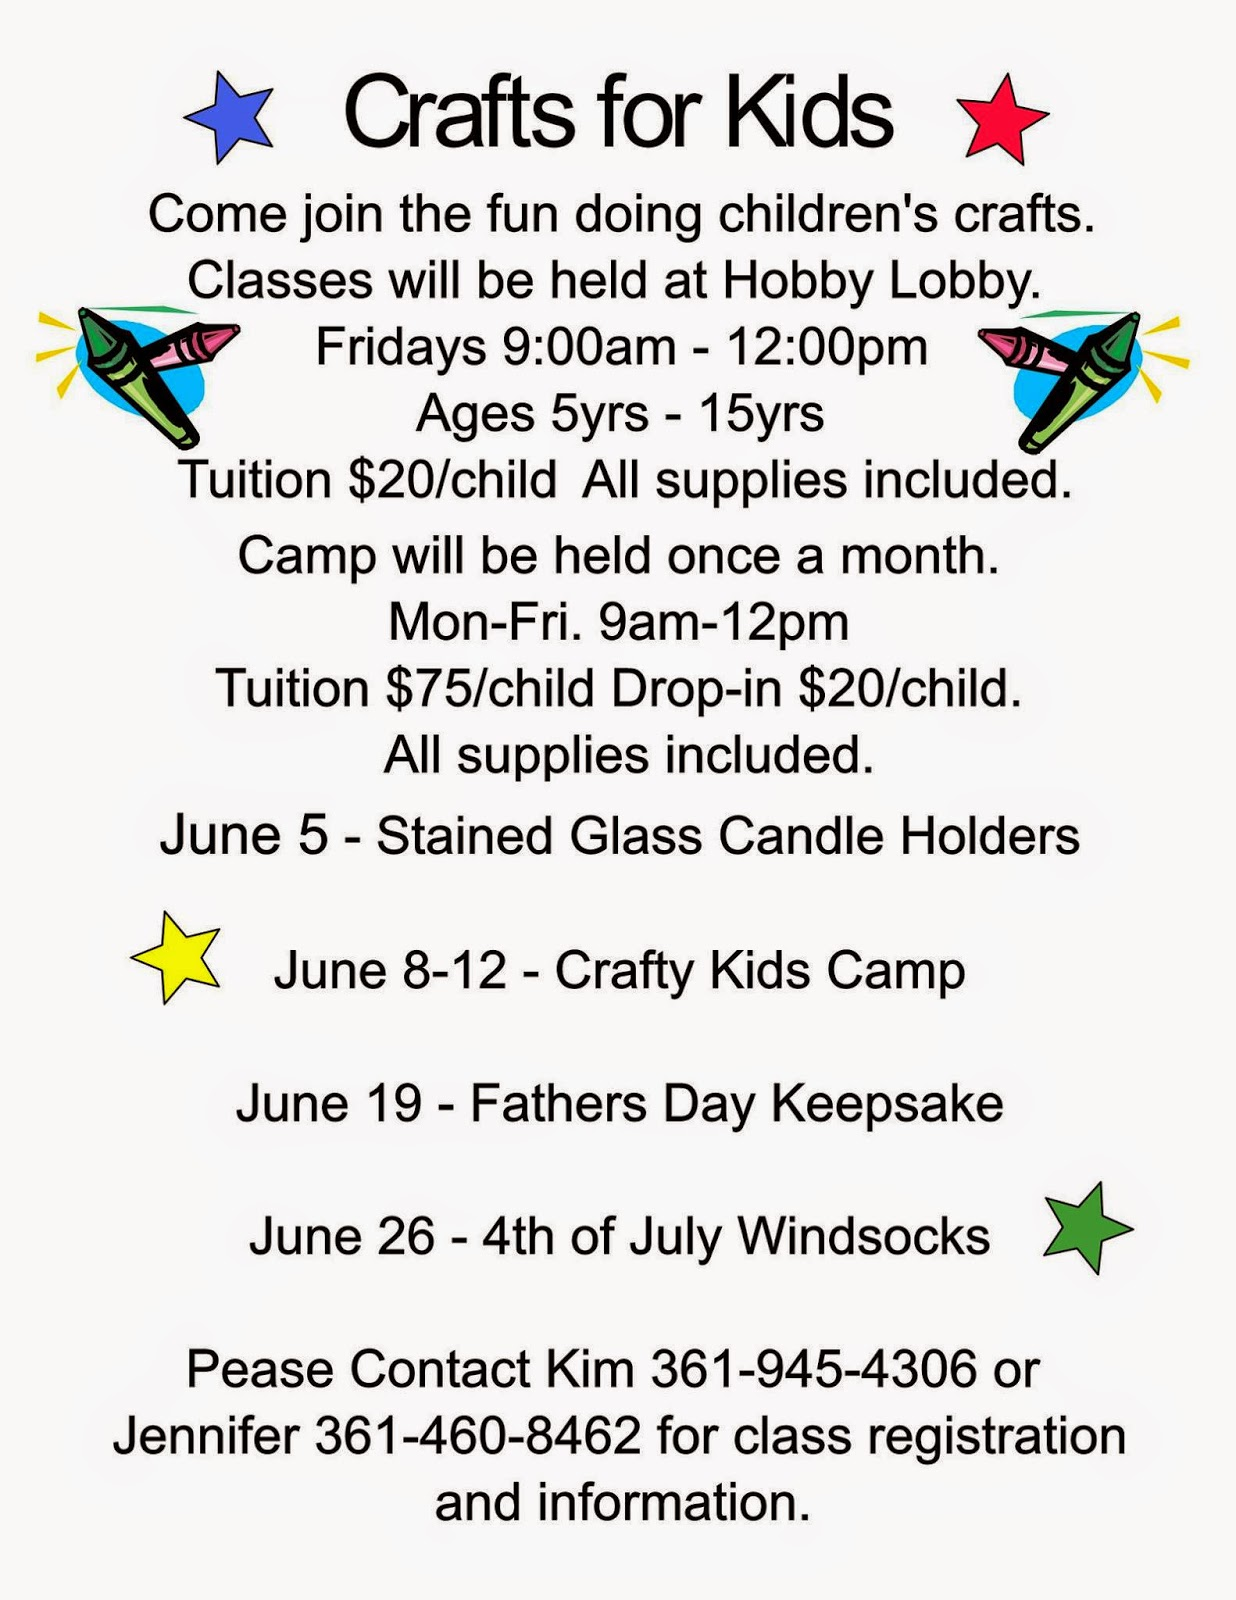 Corpus christi area summer camps 2015 corpus christi fun for kids hobby lobby kids crafts class and summer camp xflitez Gallery